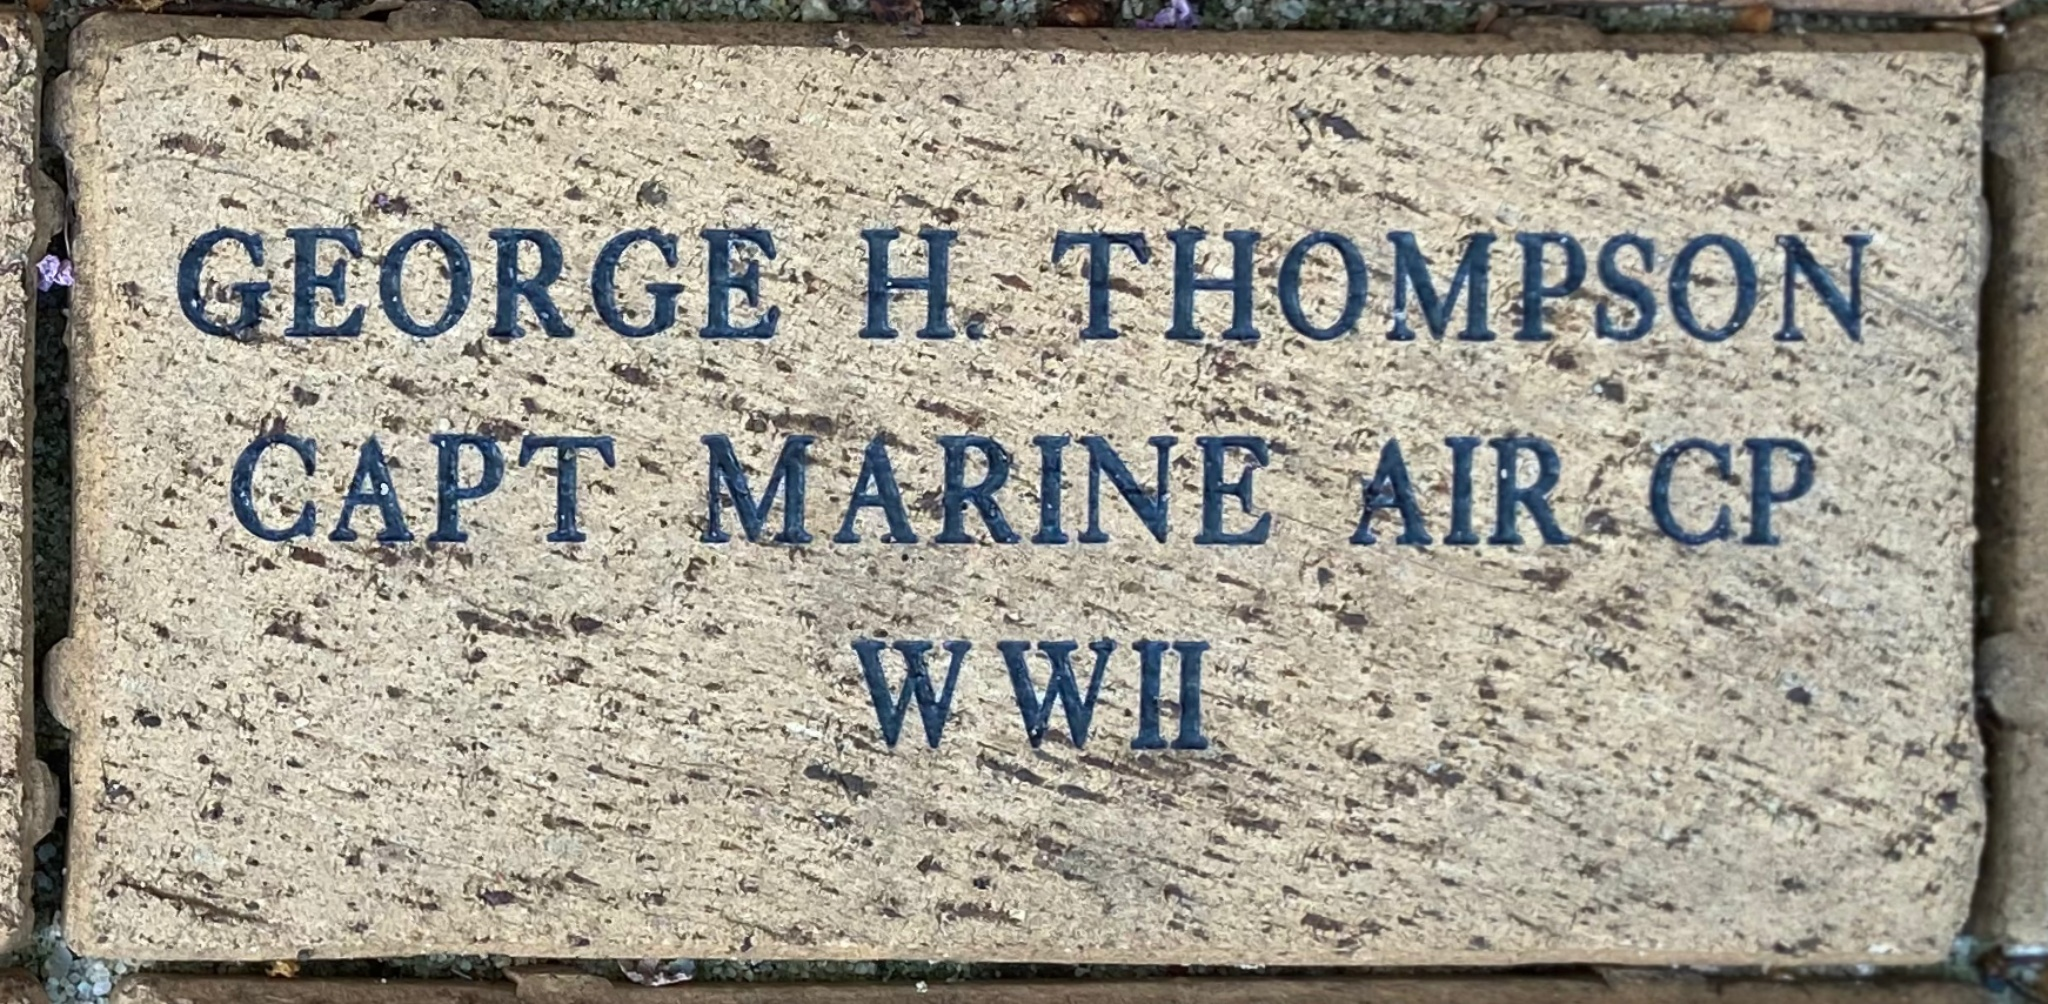 GEORGE H. THOMPSON CAPT MARINE AIR CP WWII